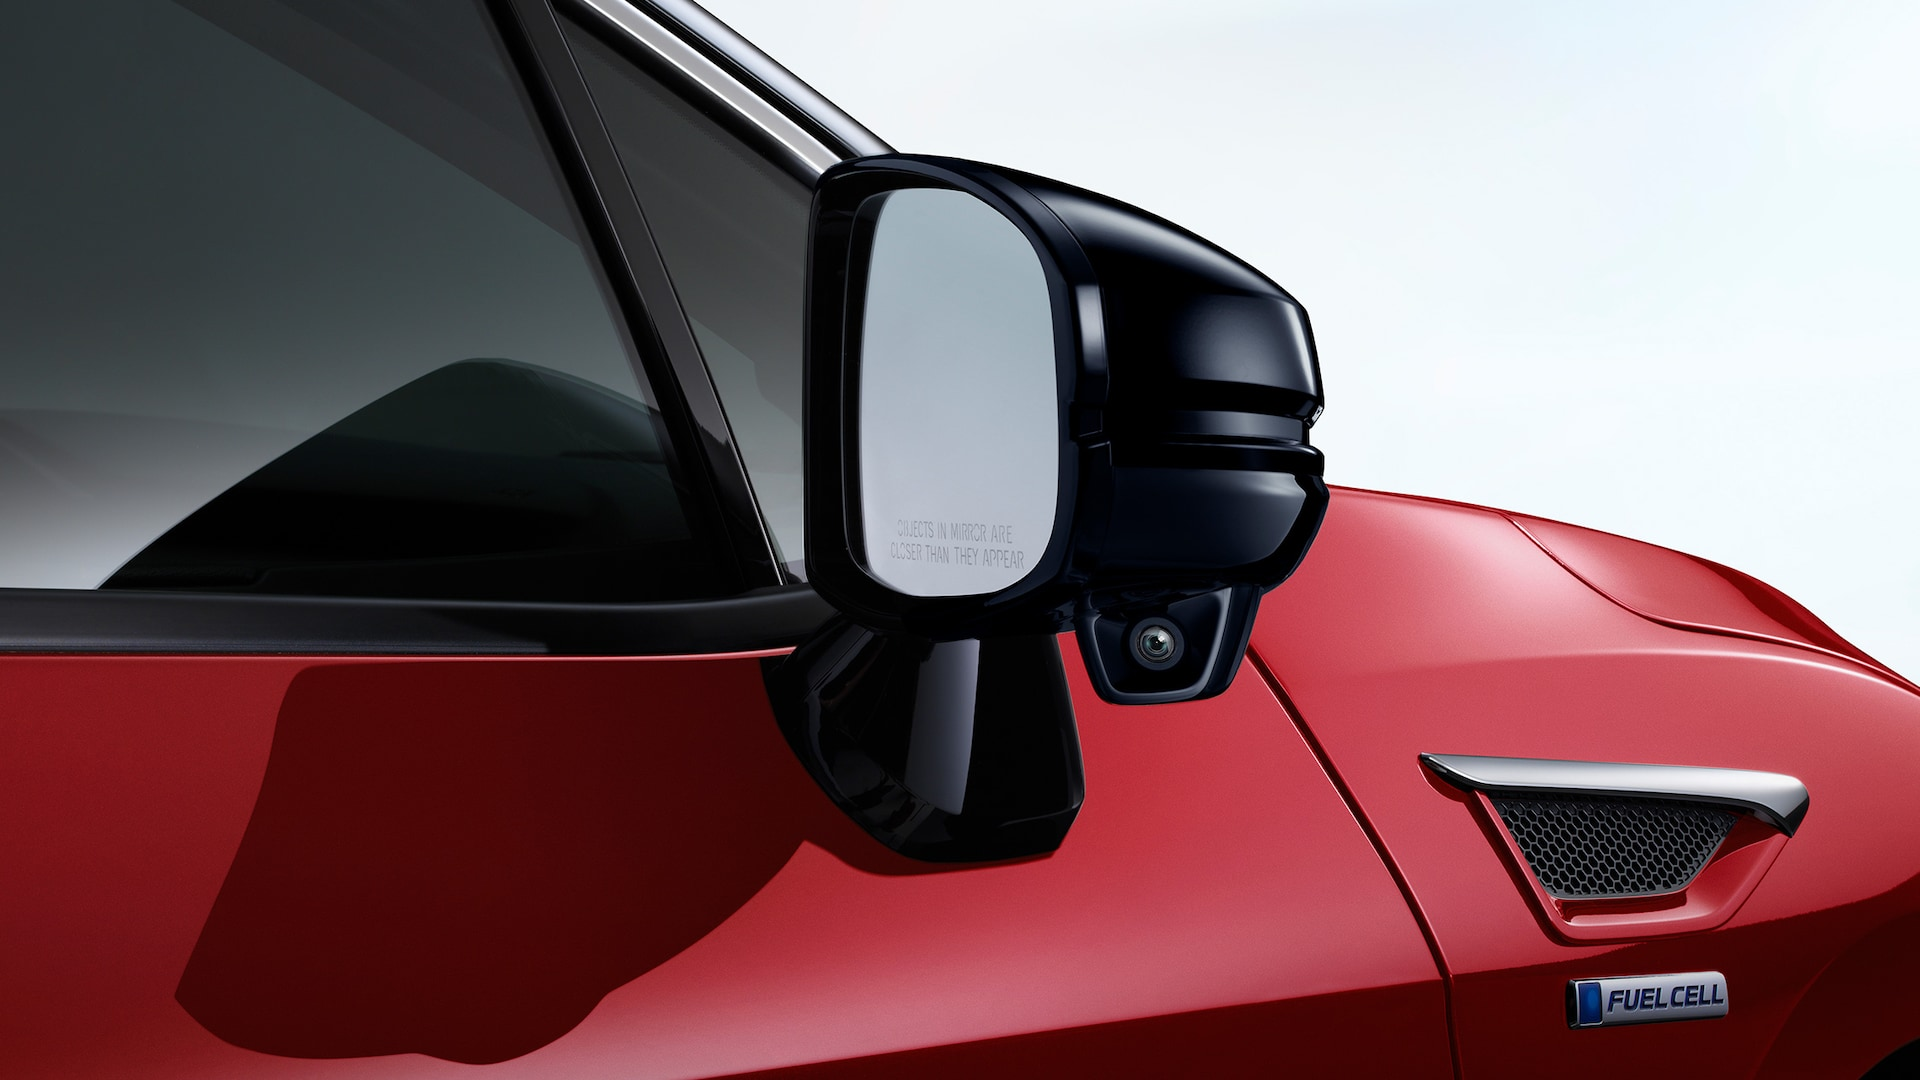 Detail of passenger-side mirror camera for Honda LaneWatch™ on 2021 Honda Clarity Fuel Cell.